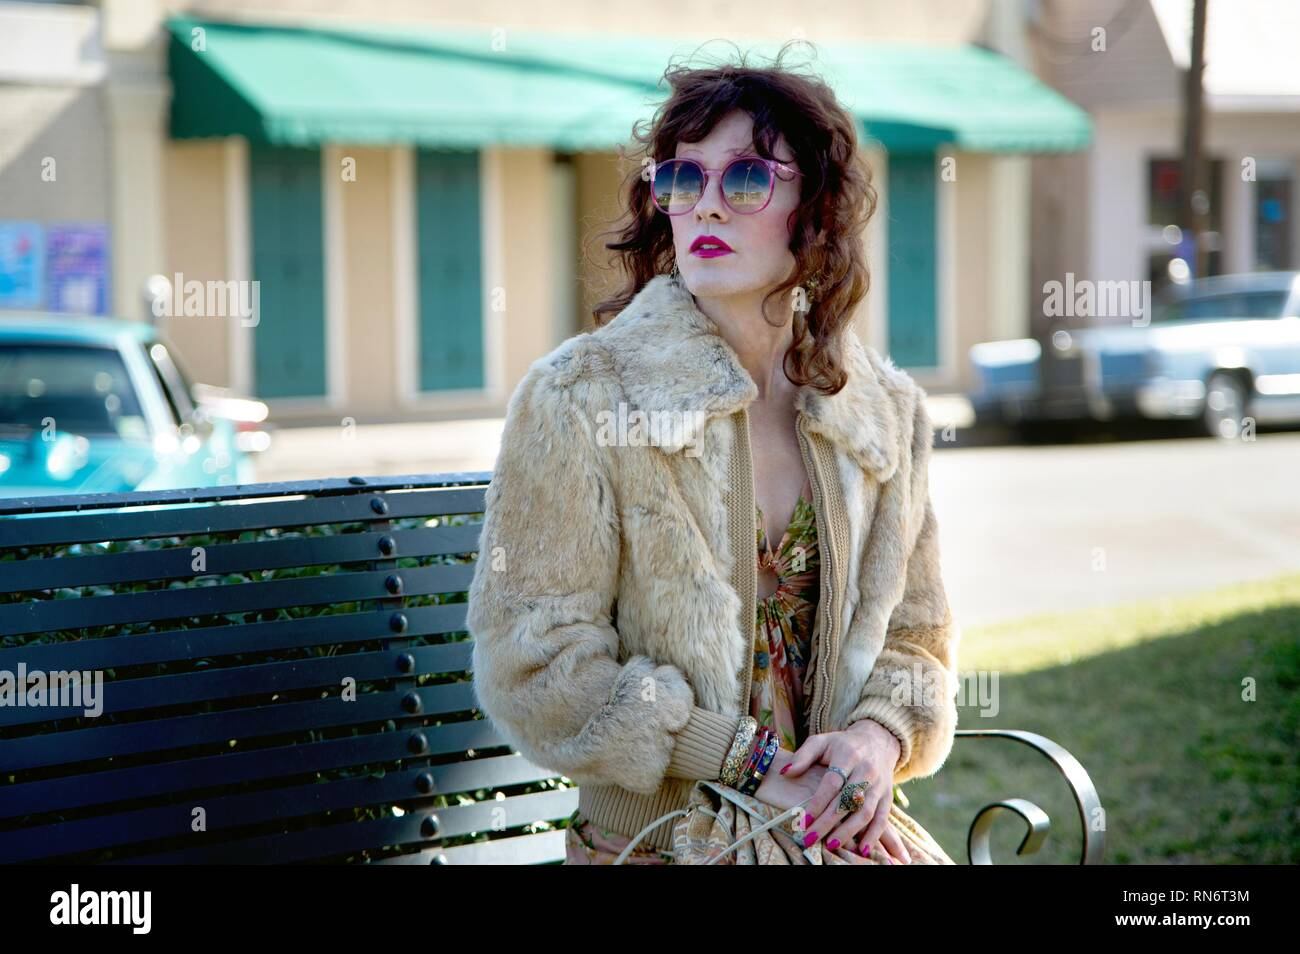 JARED LETO, DALLAS BUYERS CLUB, 2013 - Stock Image